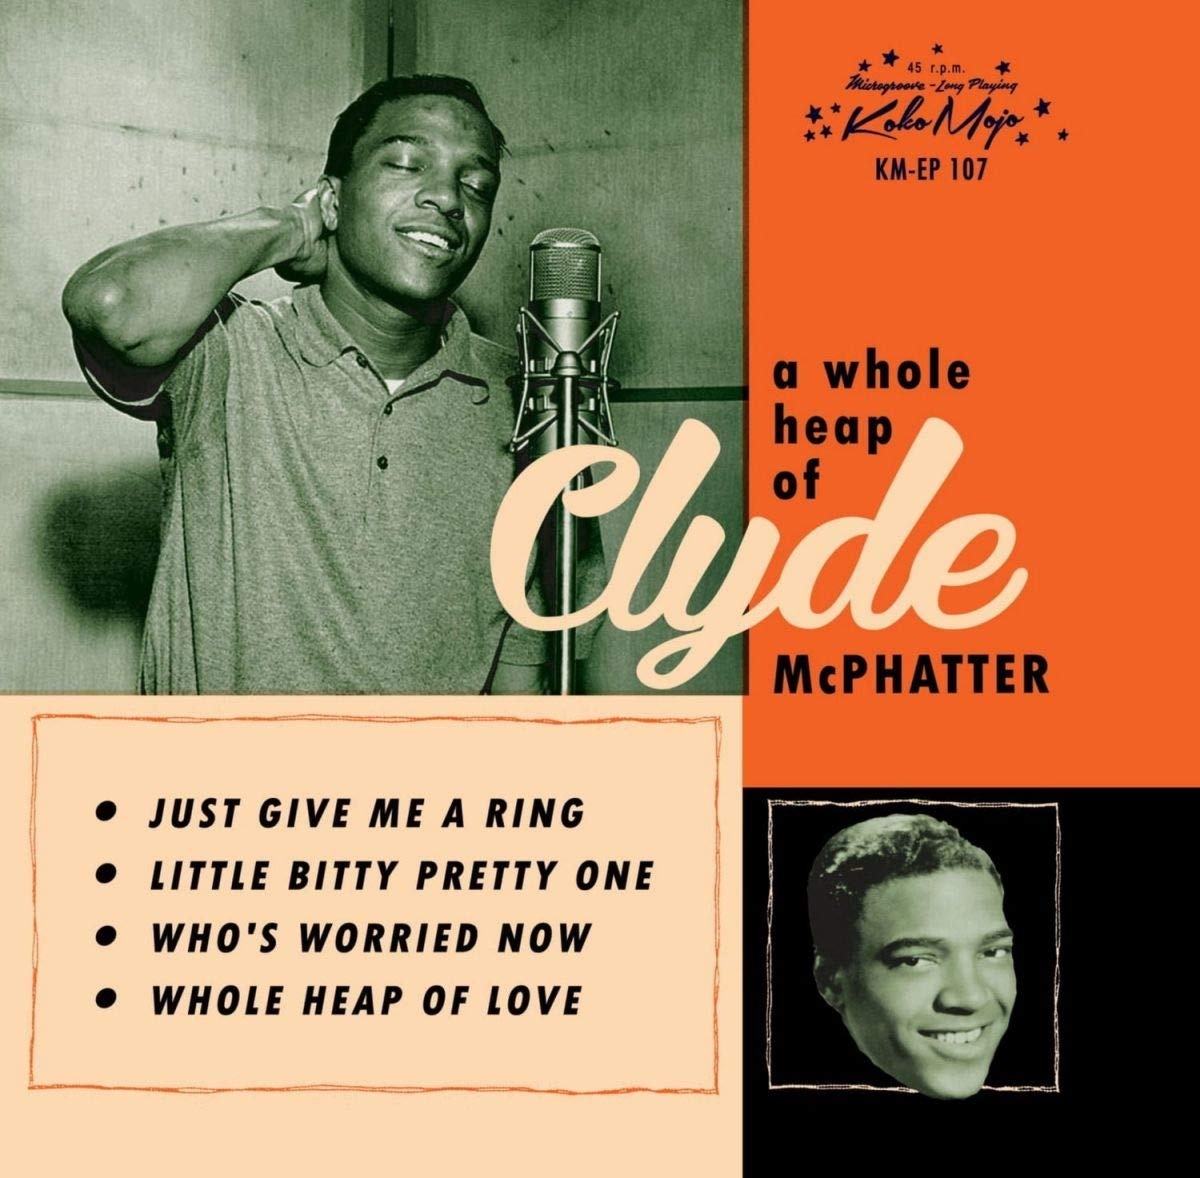 Clyde McPhatter - A Whole Heap Of [7''] (limited to 500) - Urban Vinyl | Records, Headphones, and more.